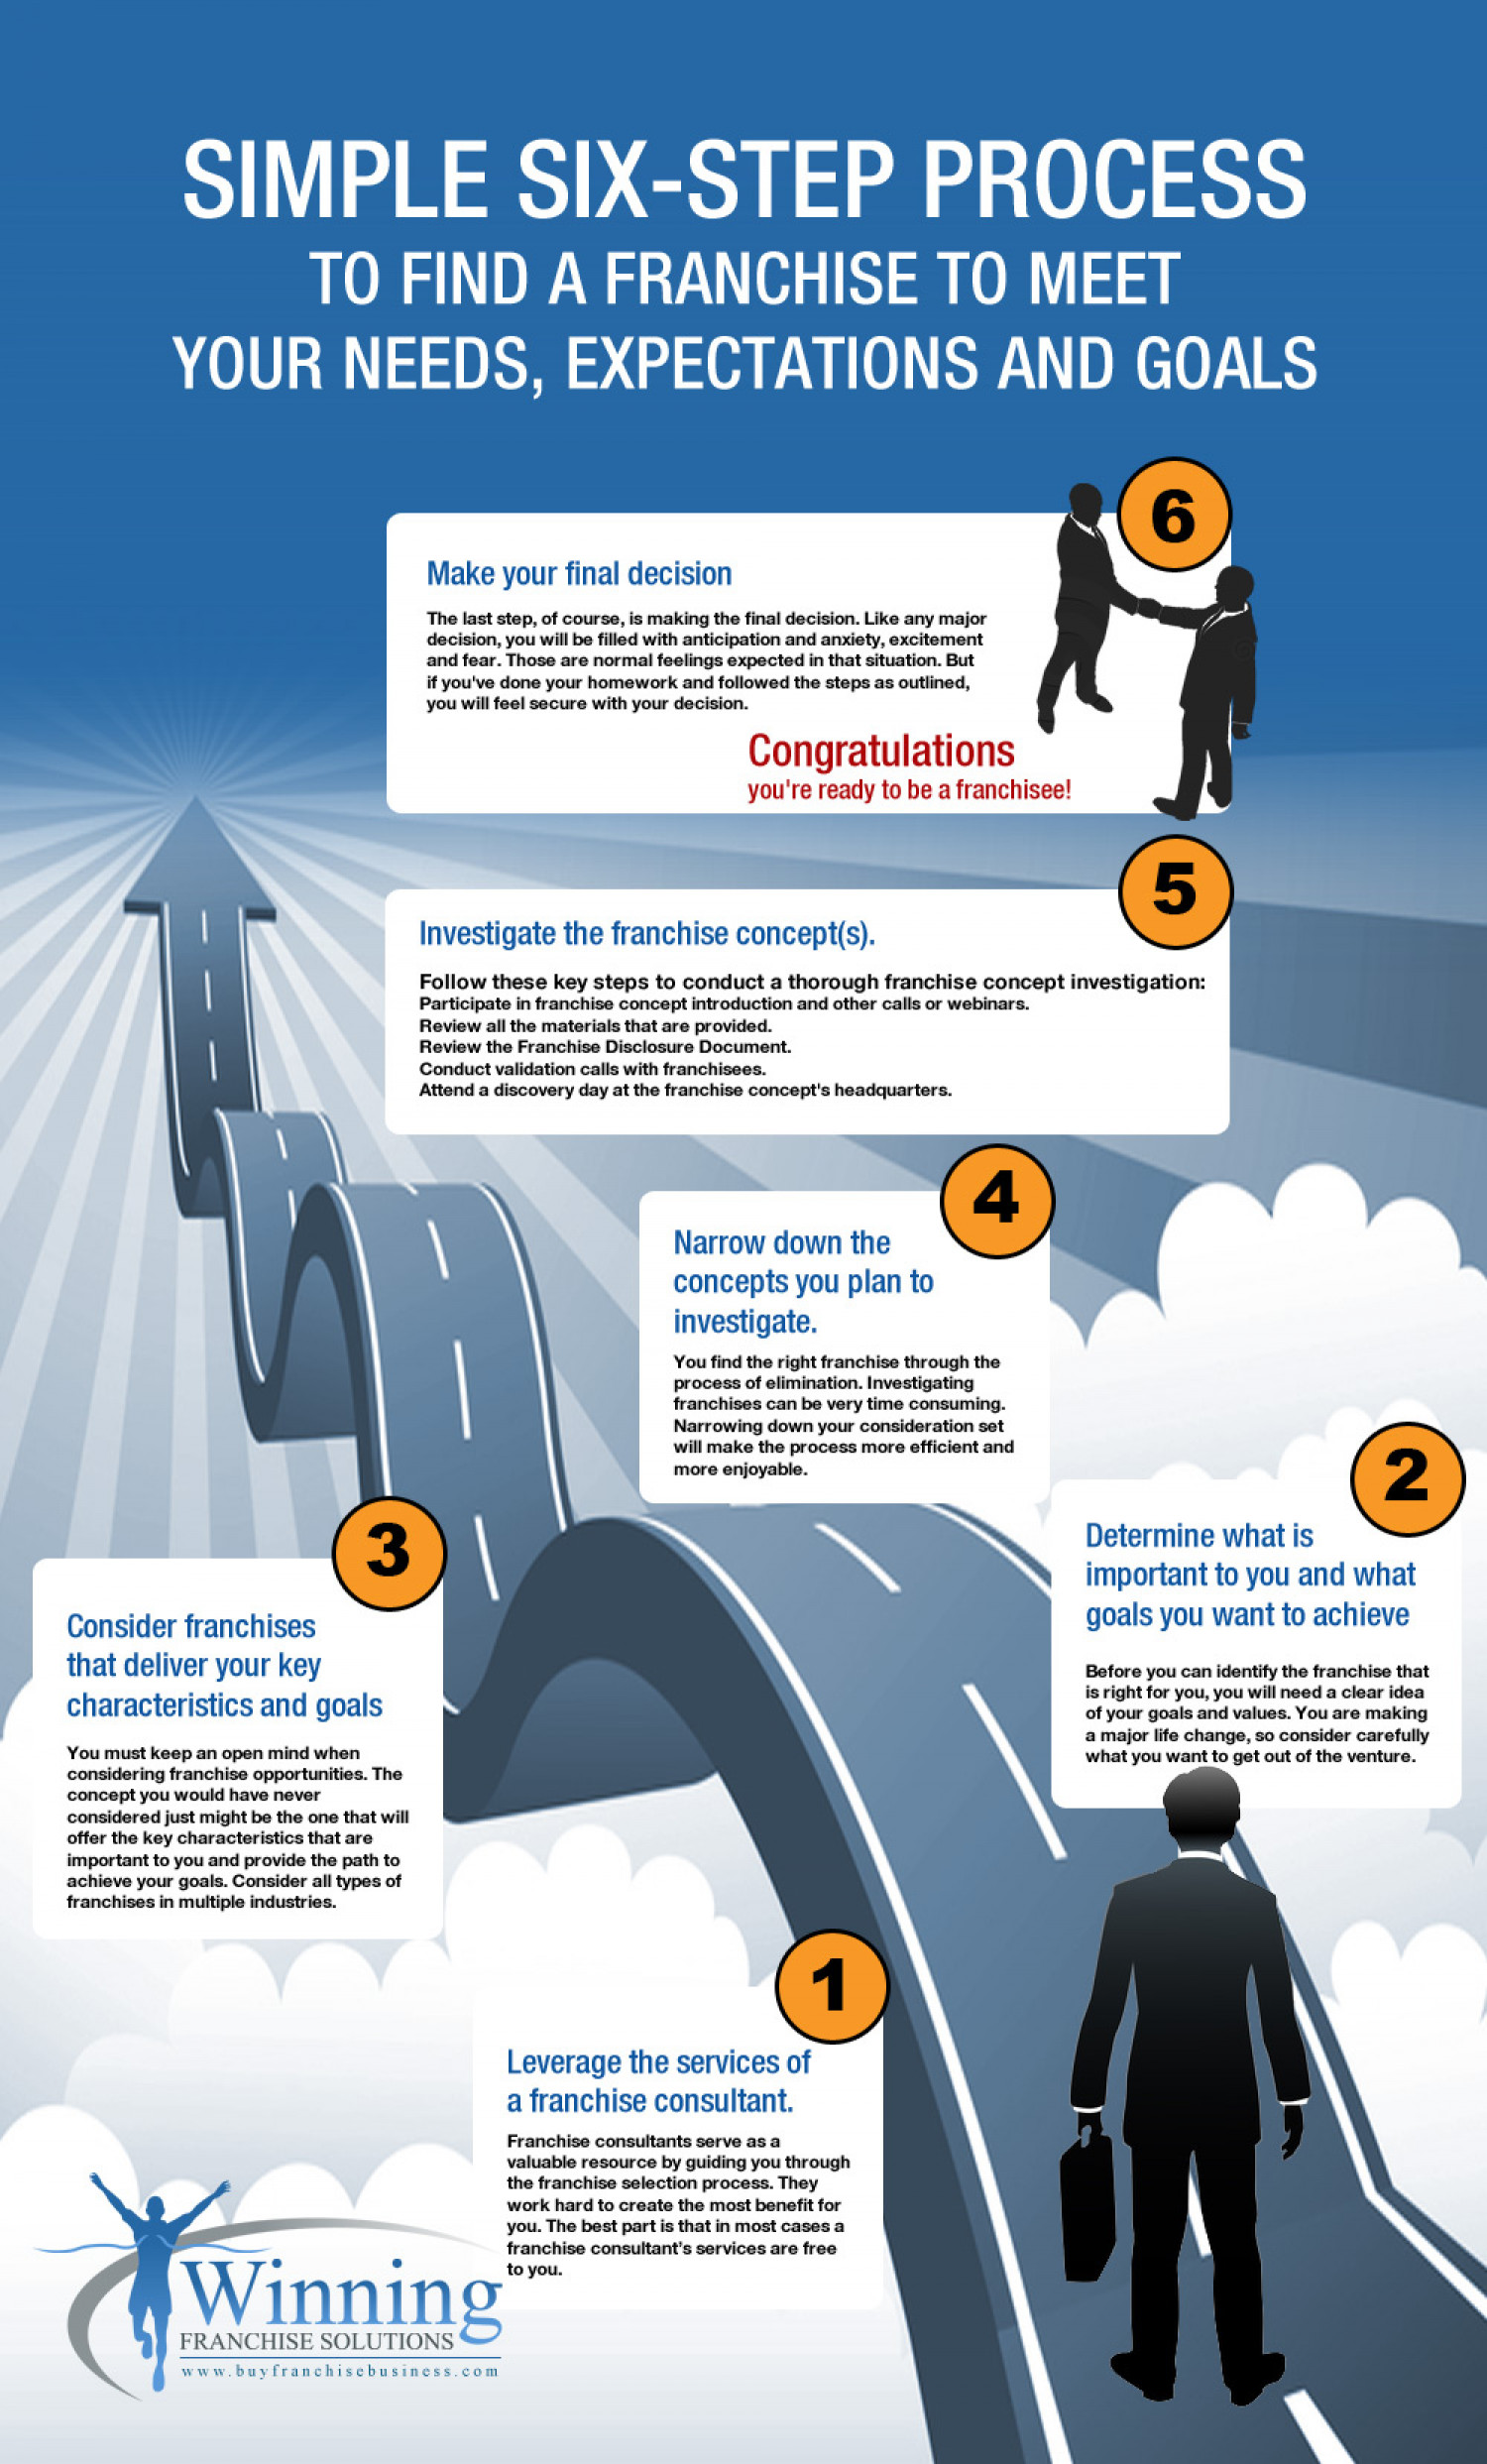 Simple Six-Step Process to Find a Franchise Infographic